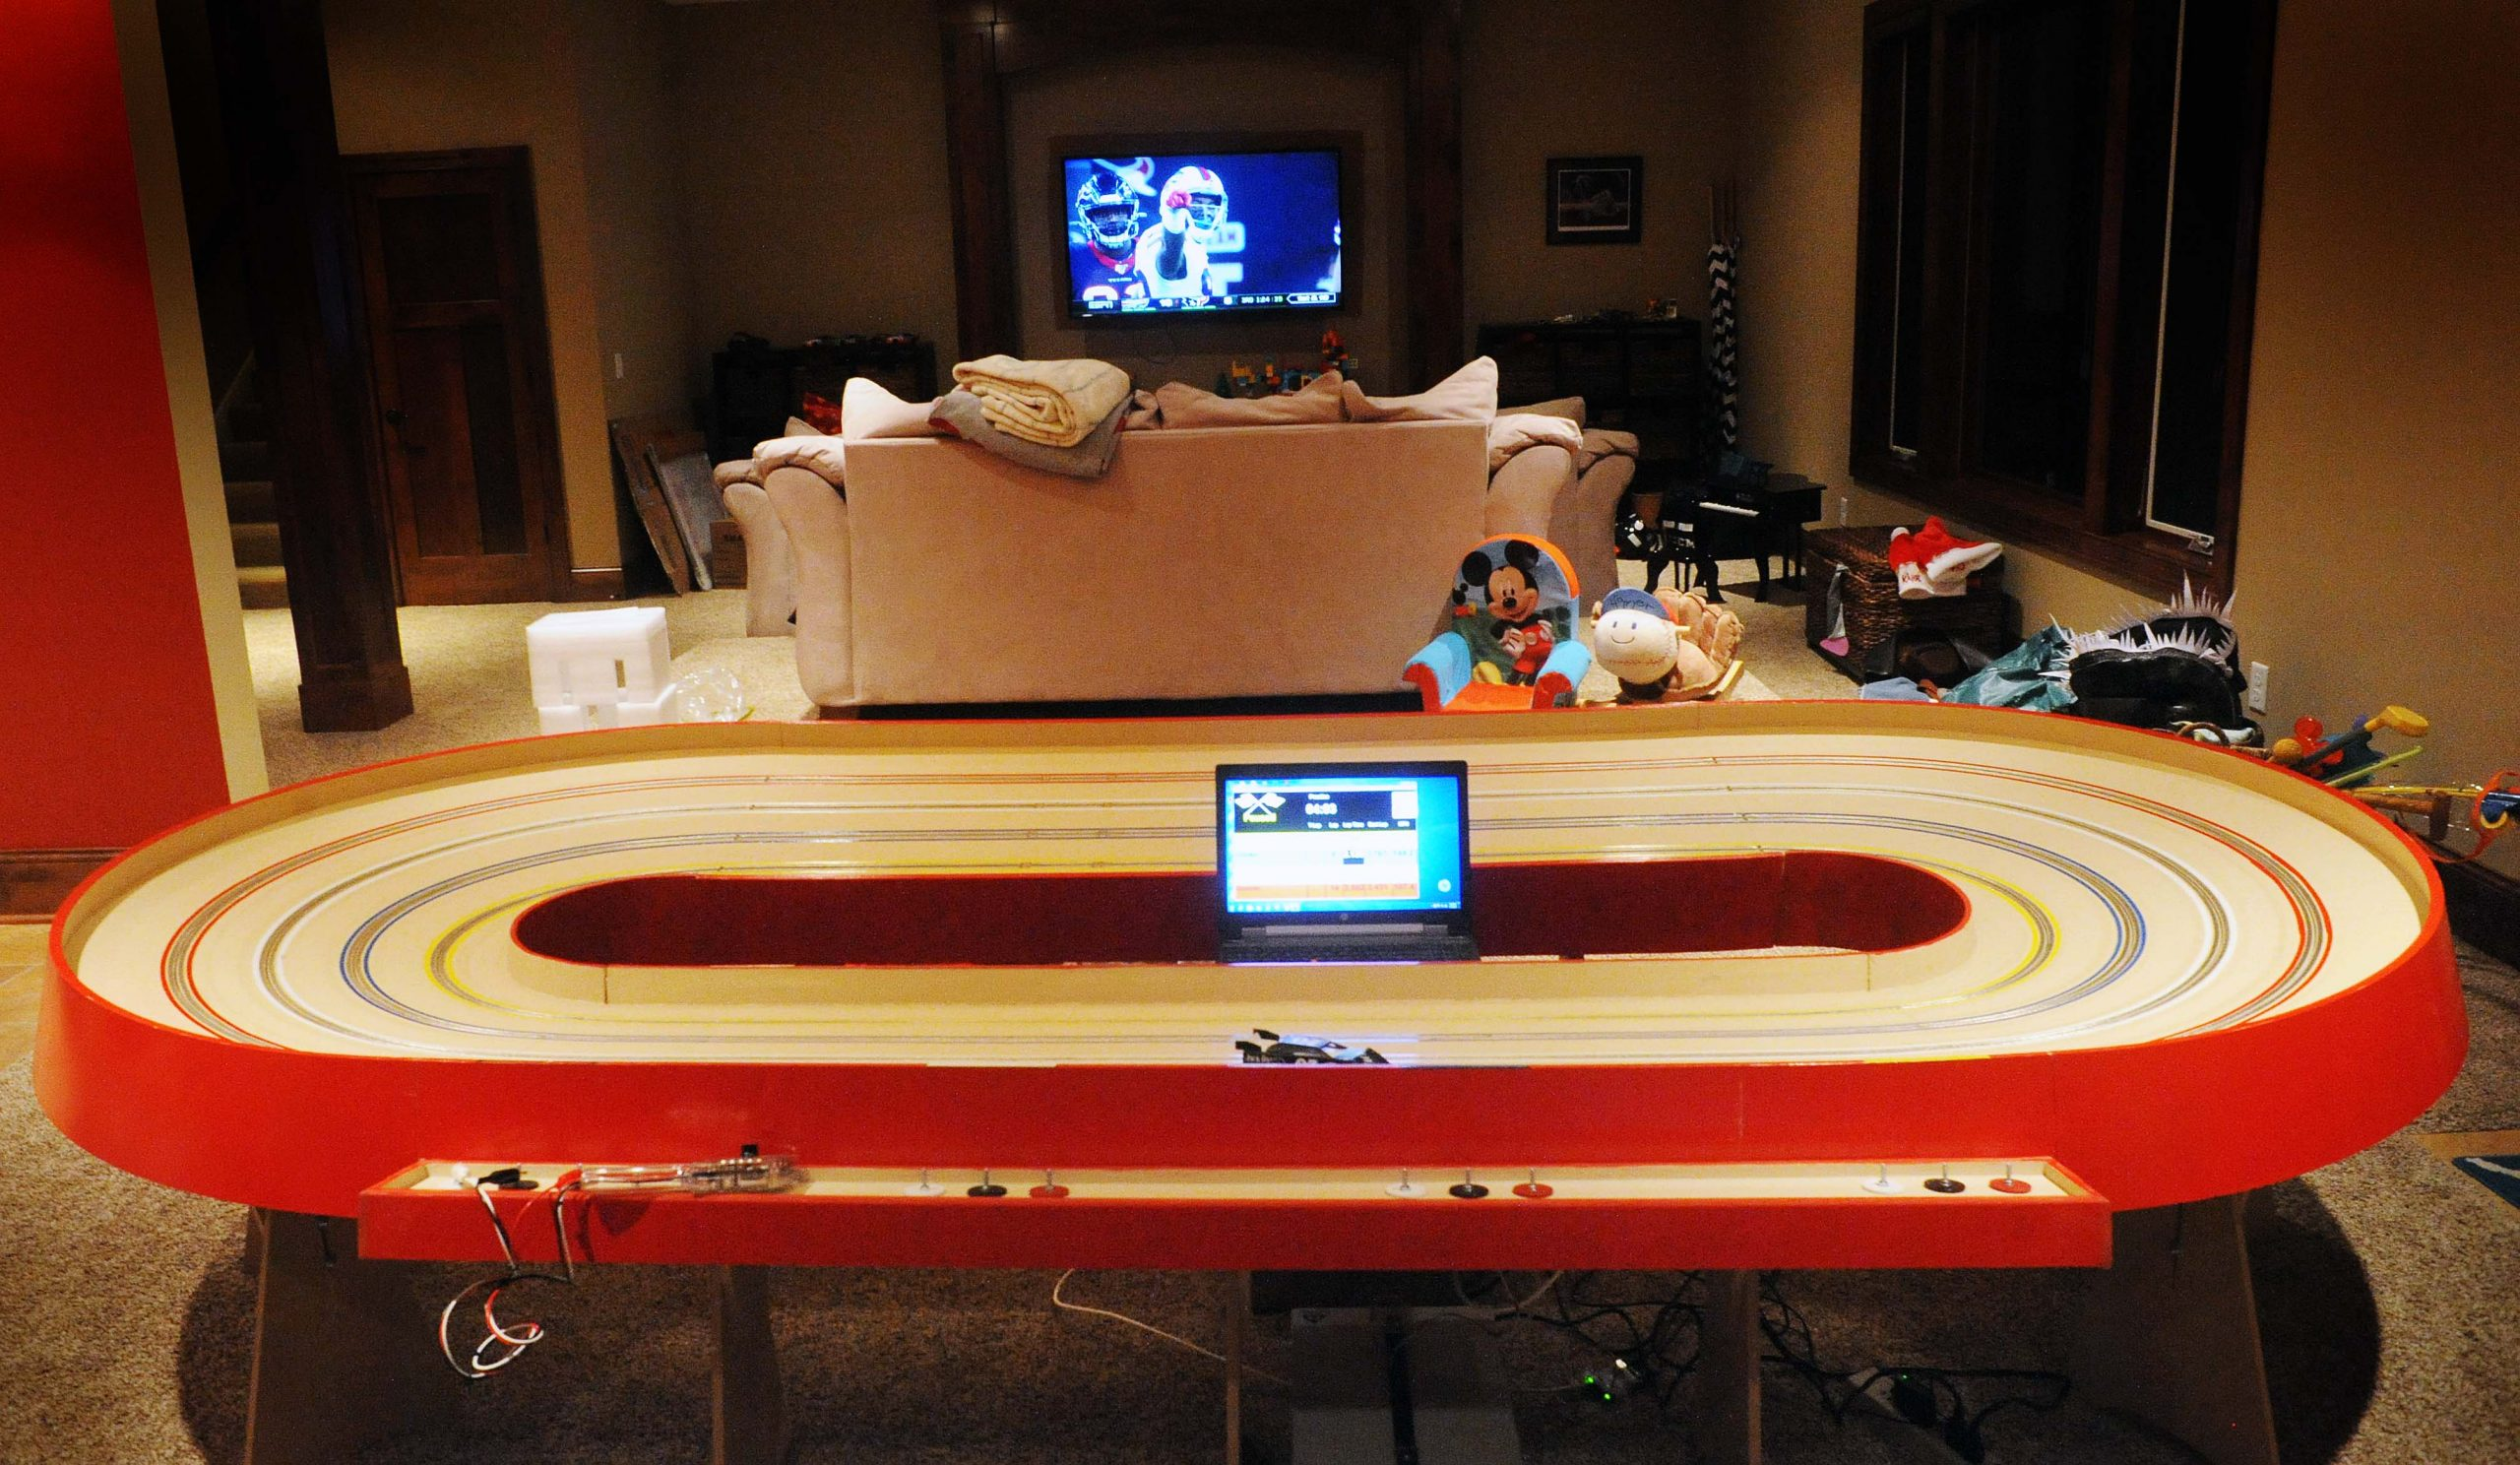 Minneapolis 4 lane oval home slot car track